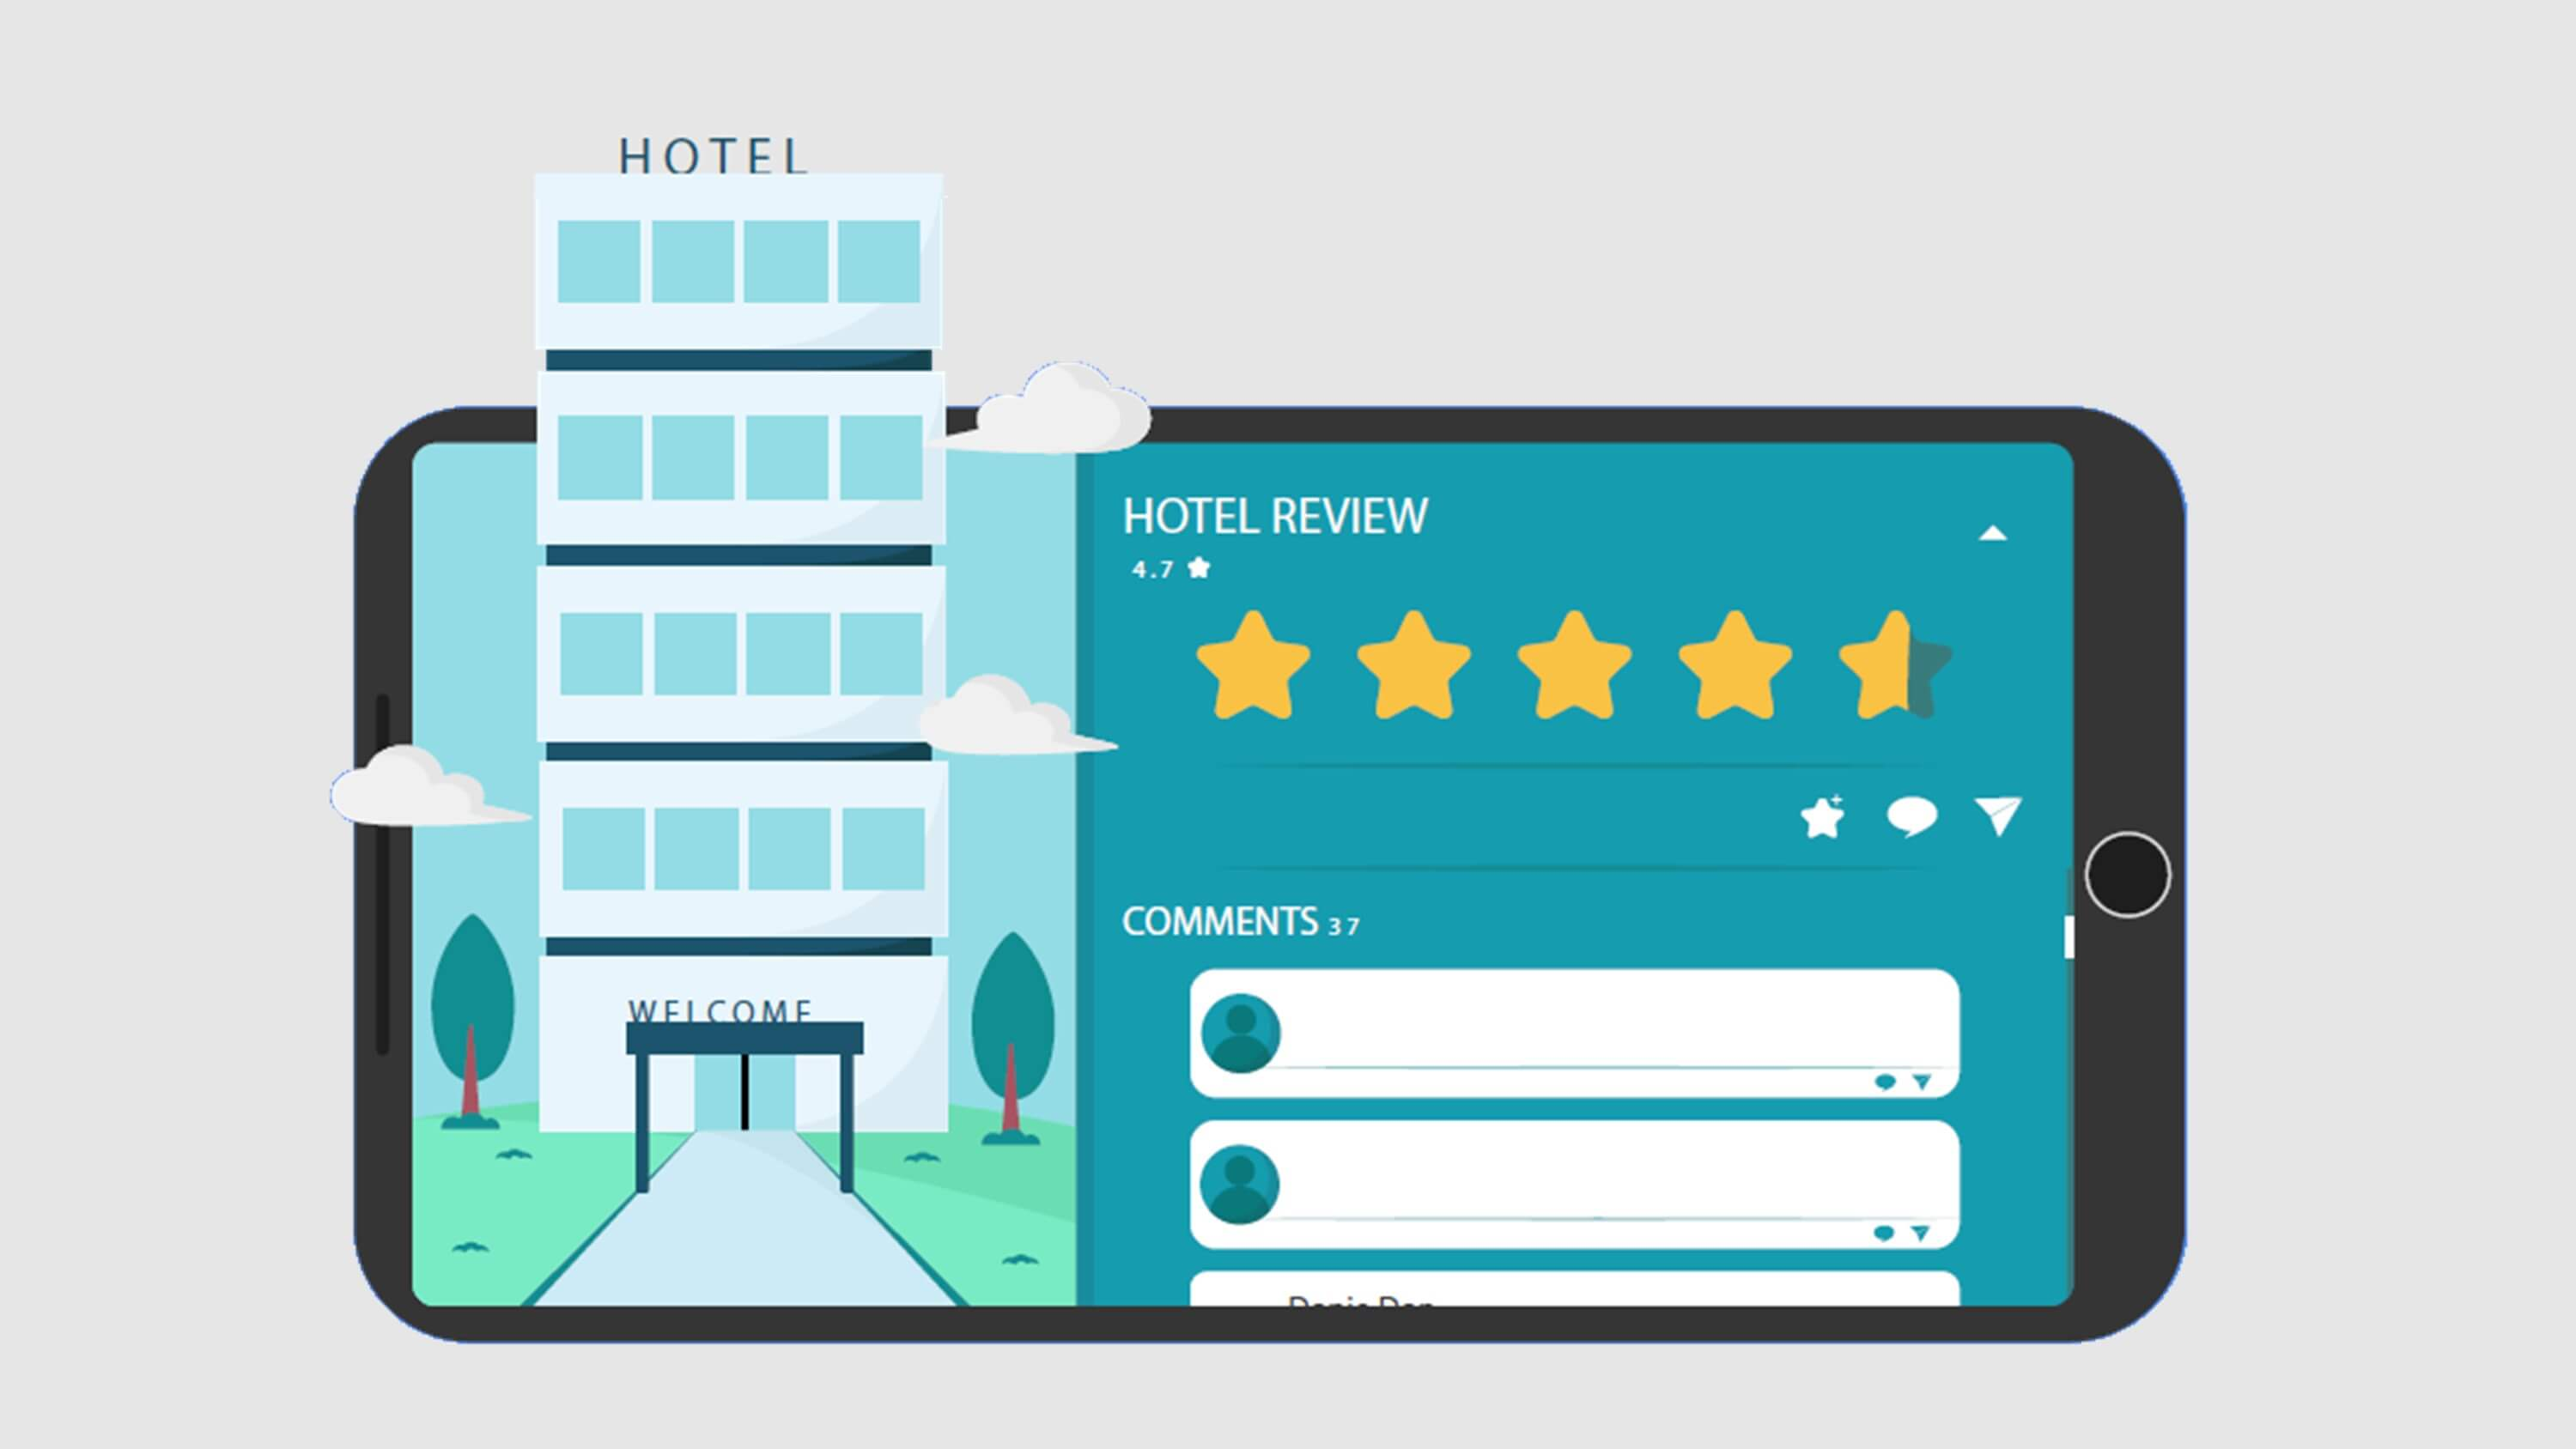 Customer Reviews For Hotels and Restaurants